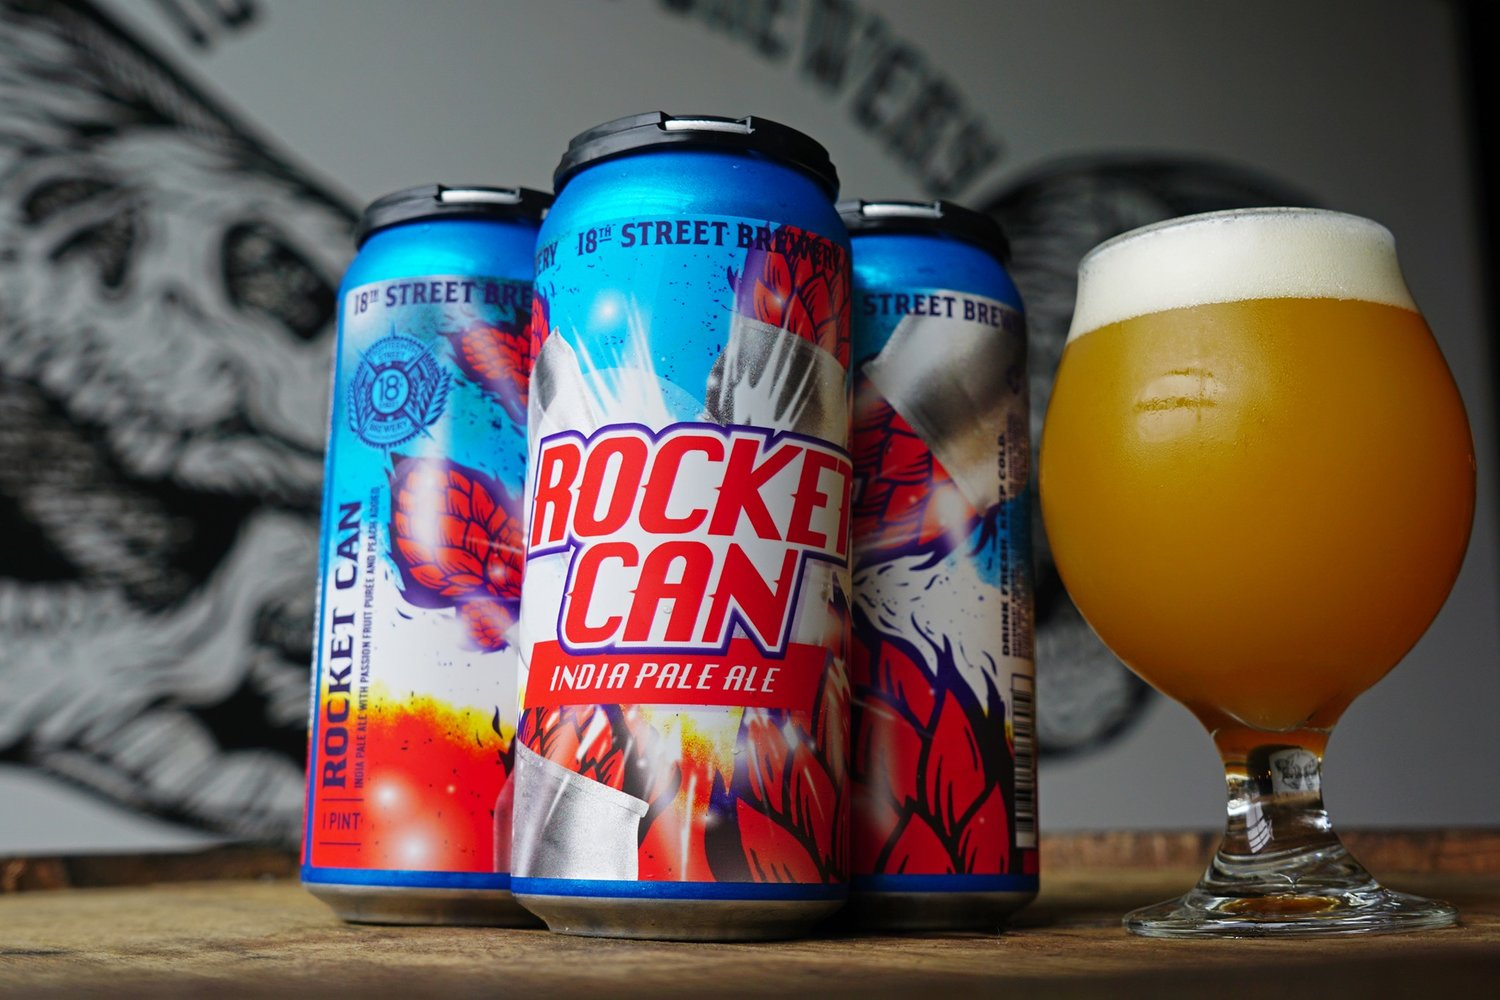 Rocket Can' in CANS! — 18th Street Brewery